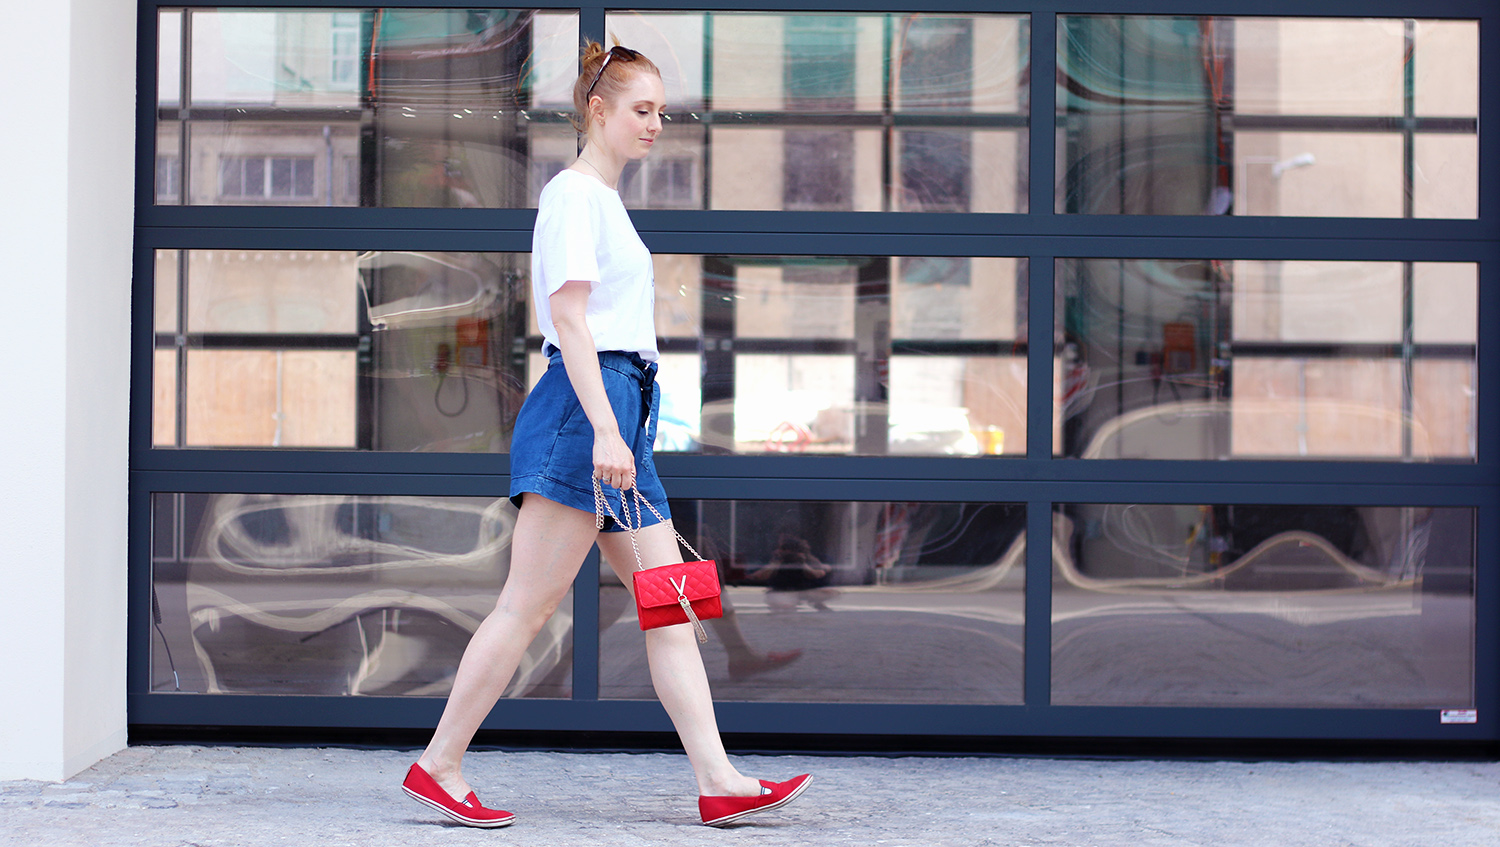 Titelbild gross, Jeans Shorts, Hose, Sommer Look, Outfit, Tipps, Streetstyle, Modetipps, Finde deinen Stil, Influencer, Deutschland, Berlin, Mode Blog, Modeblog, Advance Your Style, advanceyourstyle